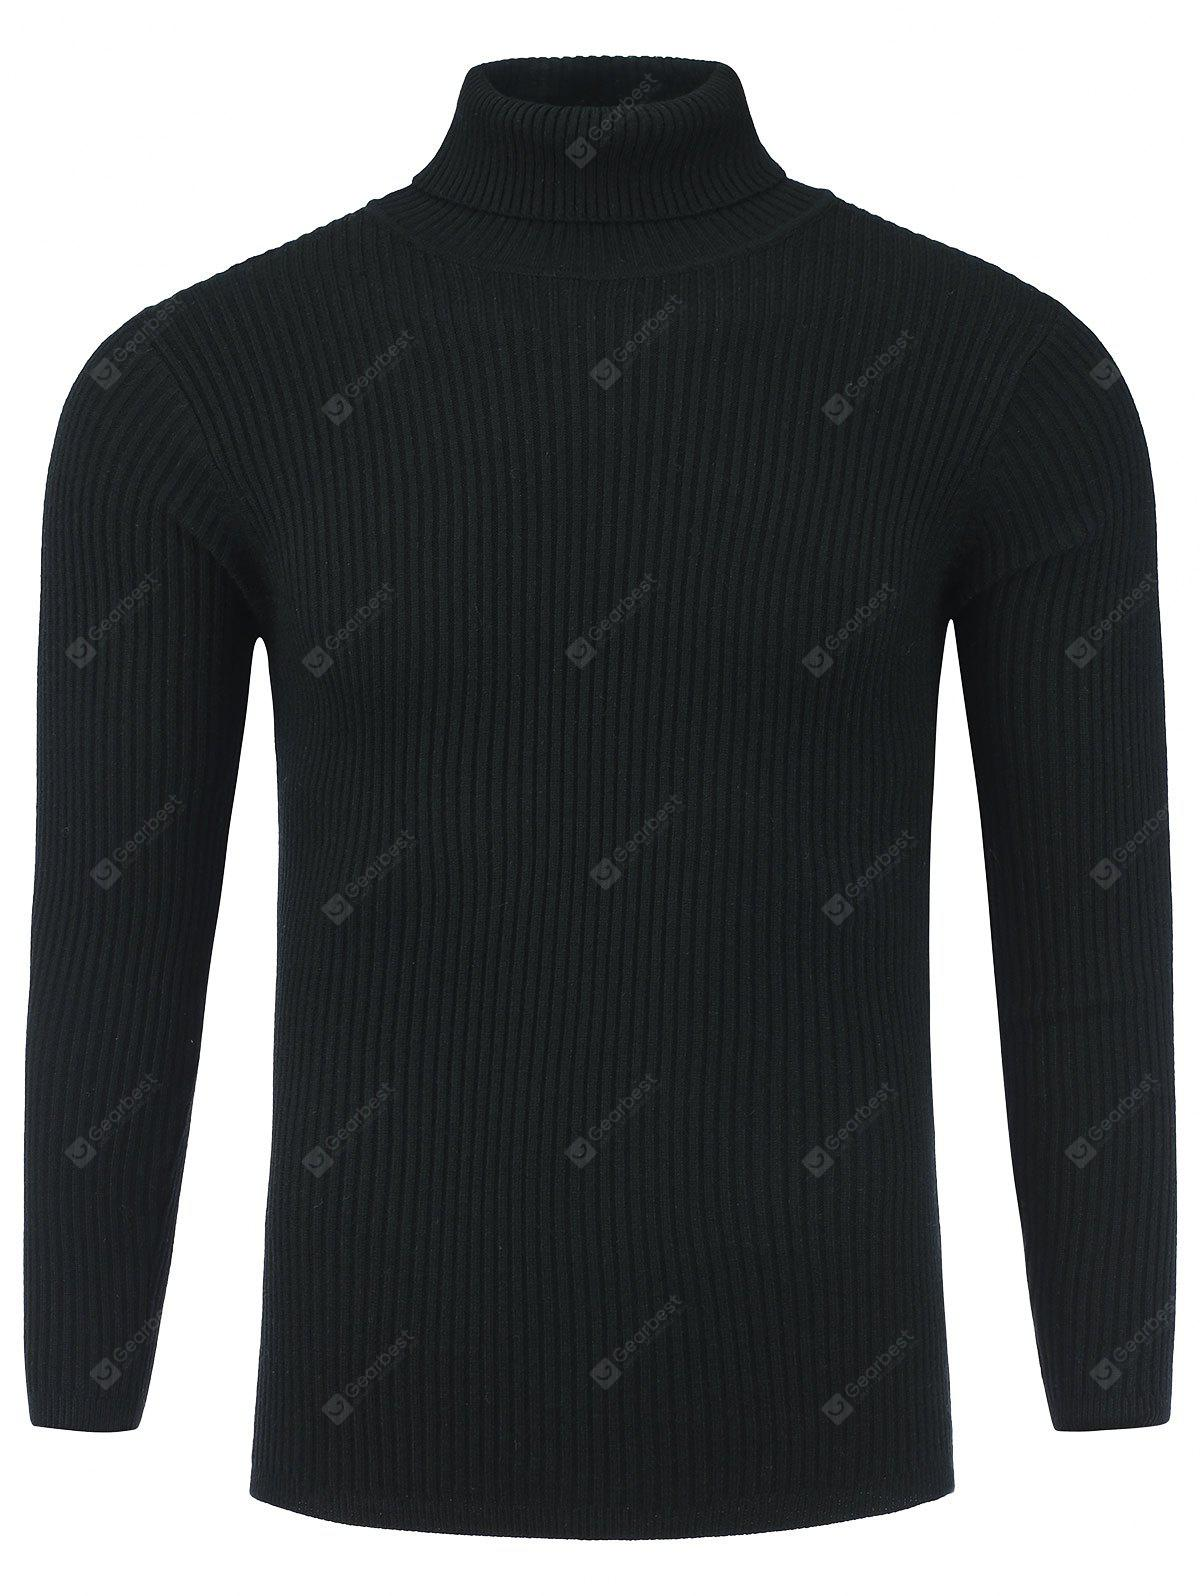 Turtle Neck Vertical Knited Stretchy Ribbed Sweater